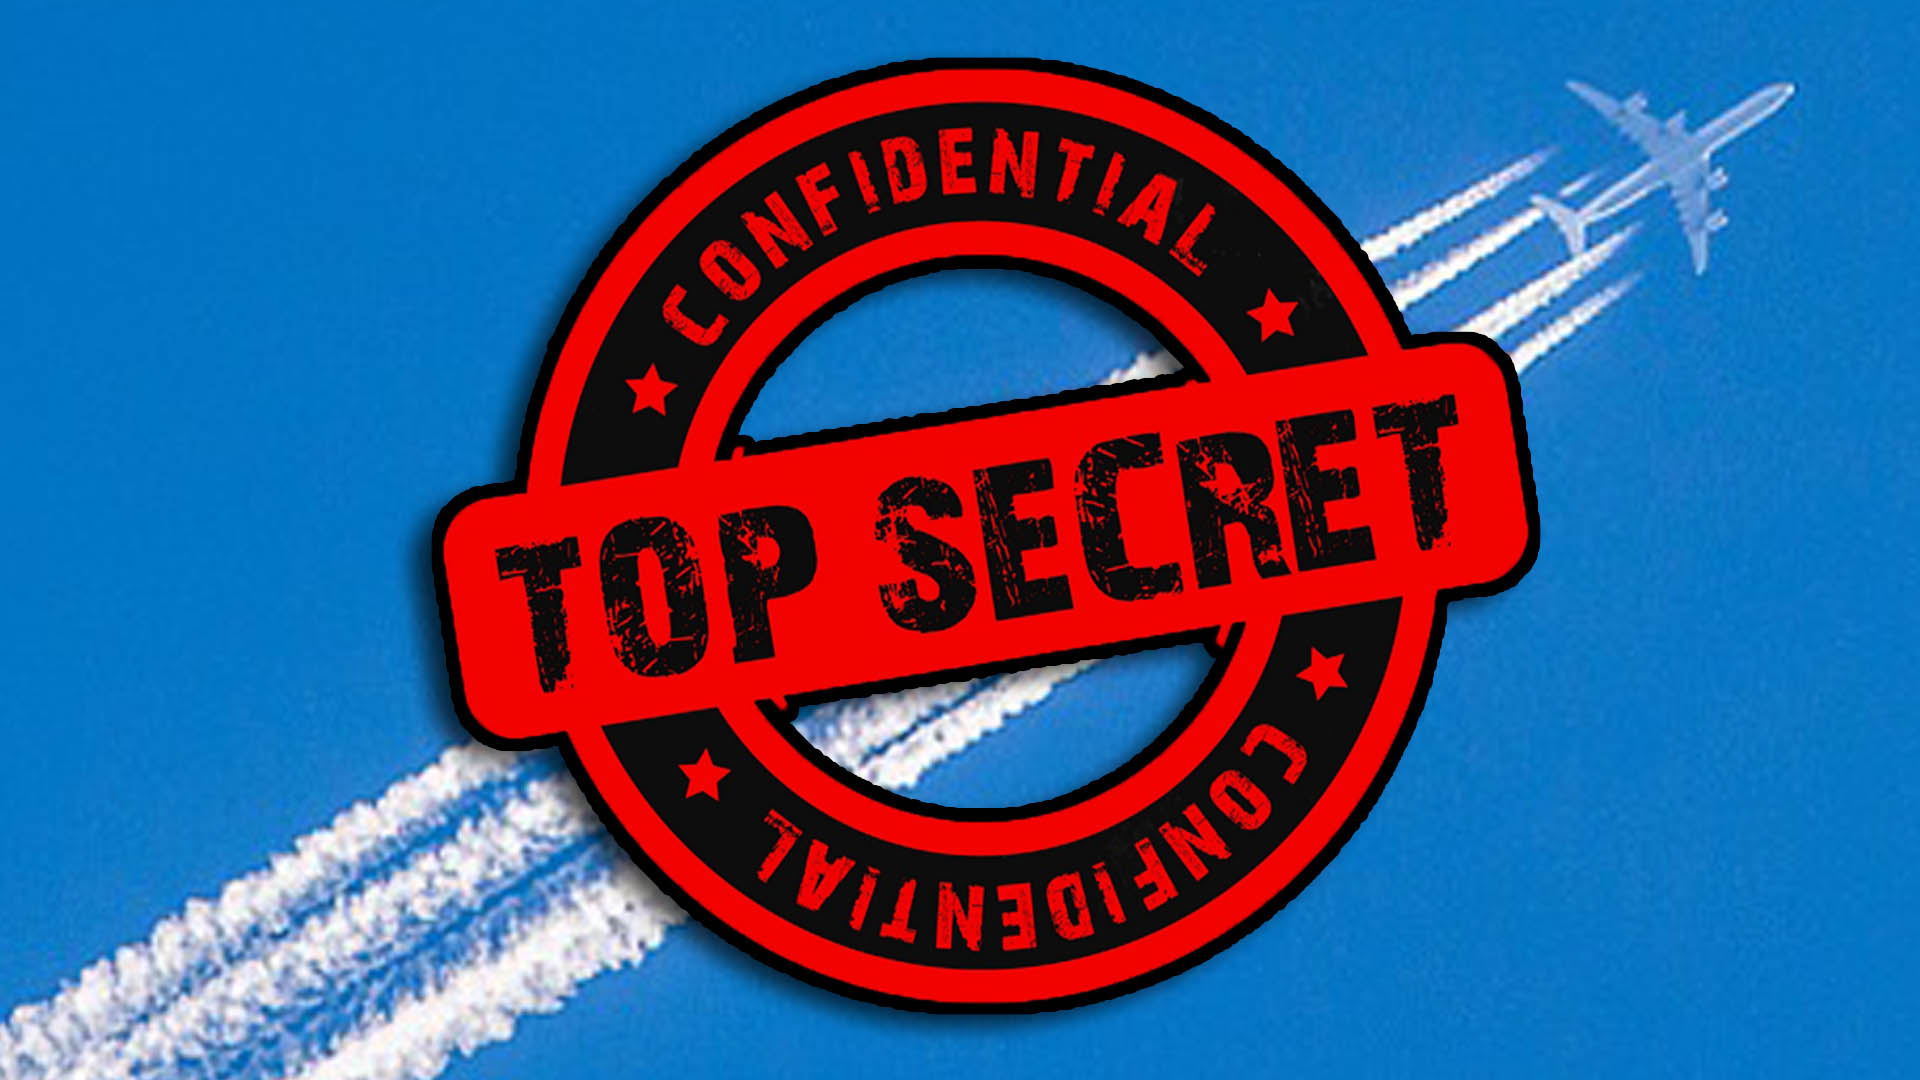 The Video Which Is Blocked On YouTube: Exposing The Damage Of Chemtrails